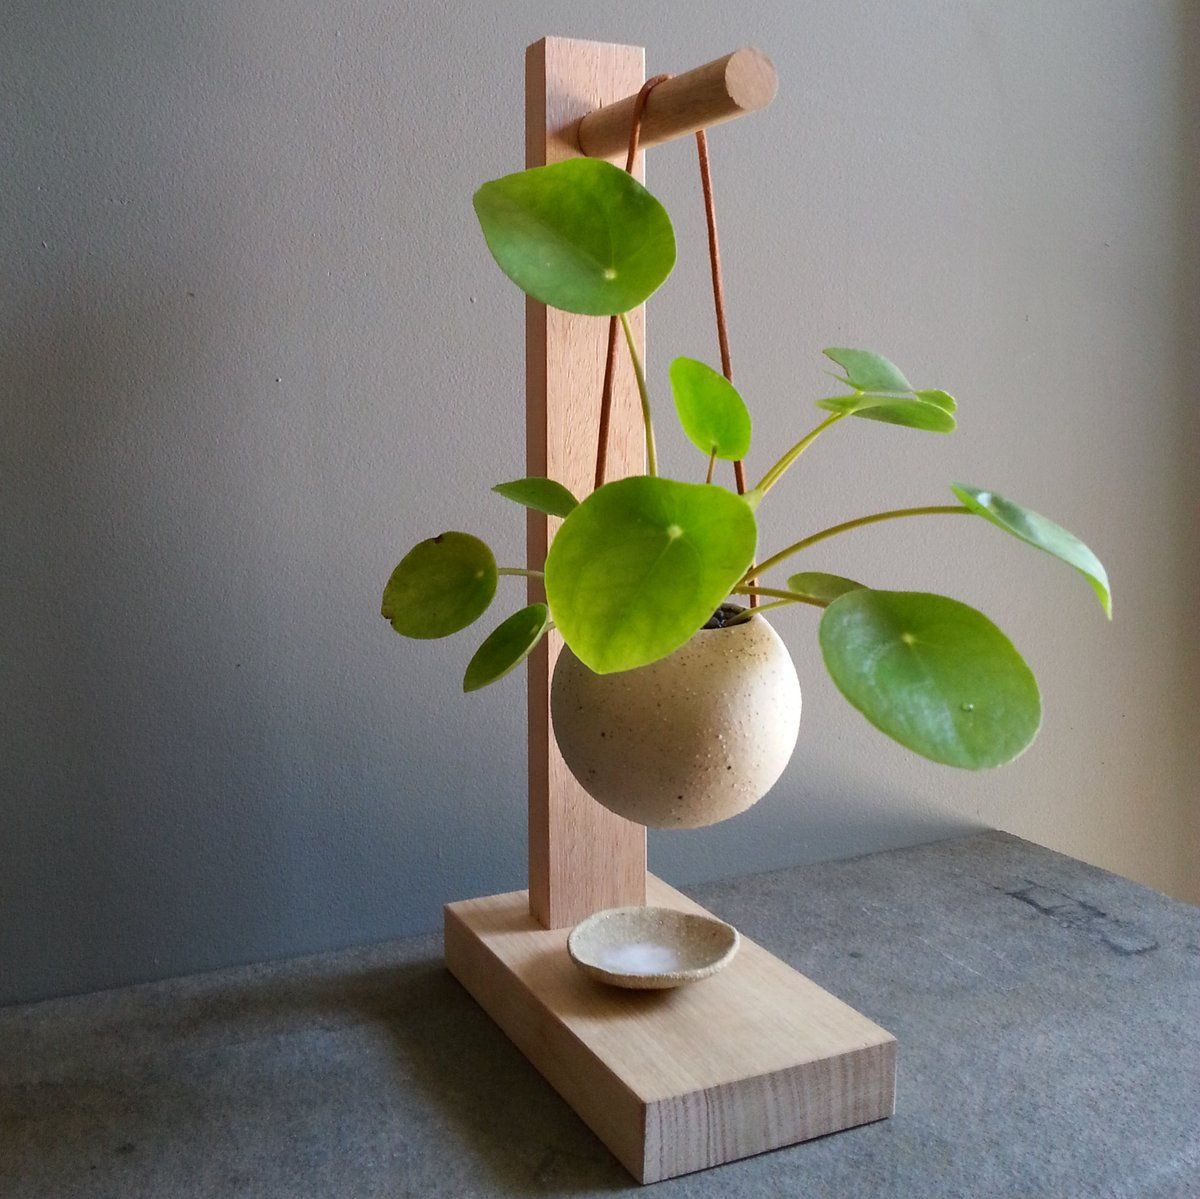 hanging glass vase with stand of greenhaus projects design craft house plants pinterest with hanging pilea in mixed clay mudpot planter with leather strapping on australian hardwood timber s